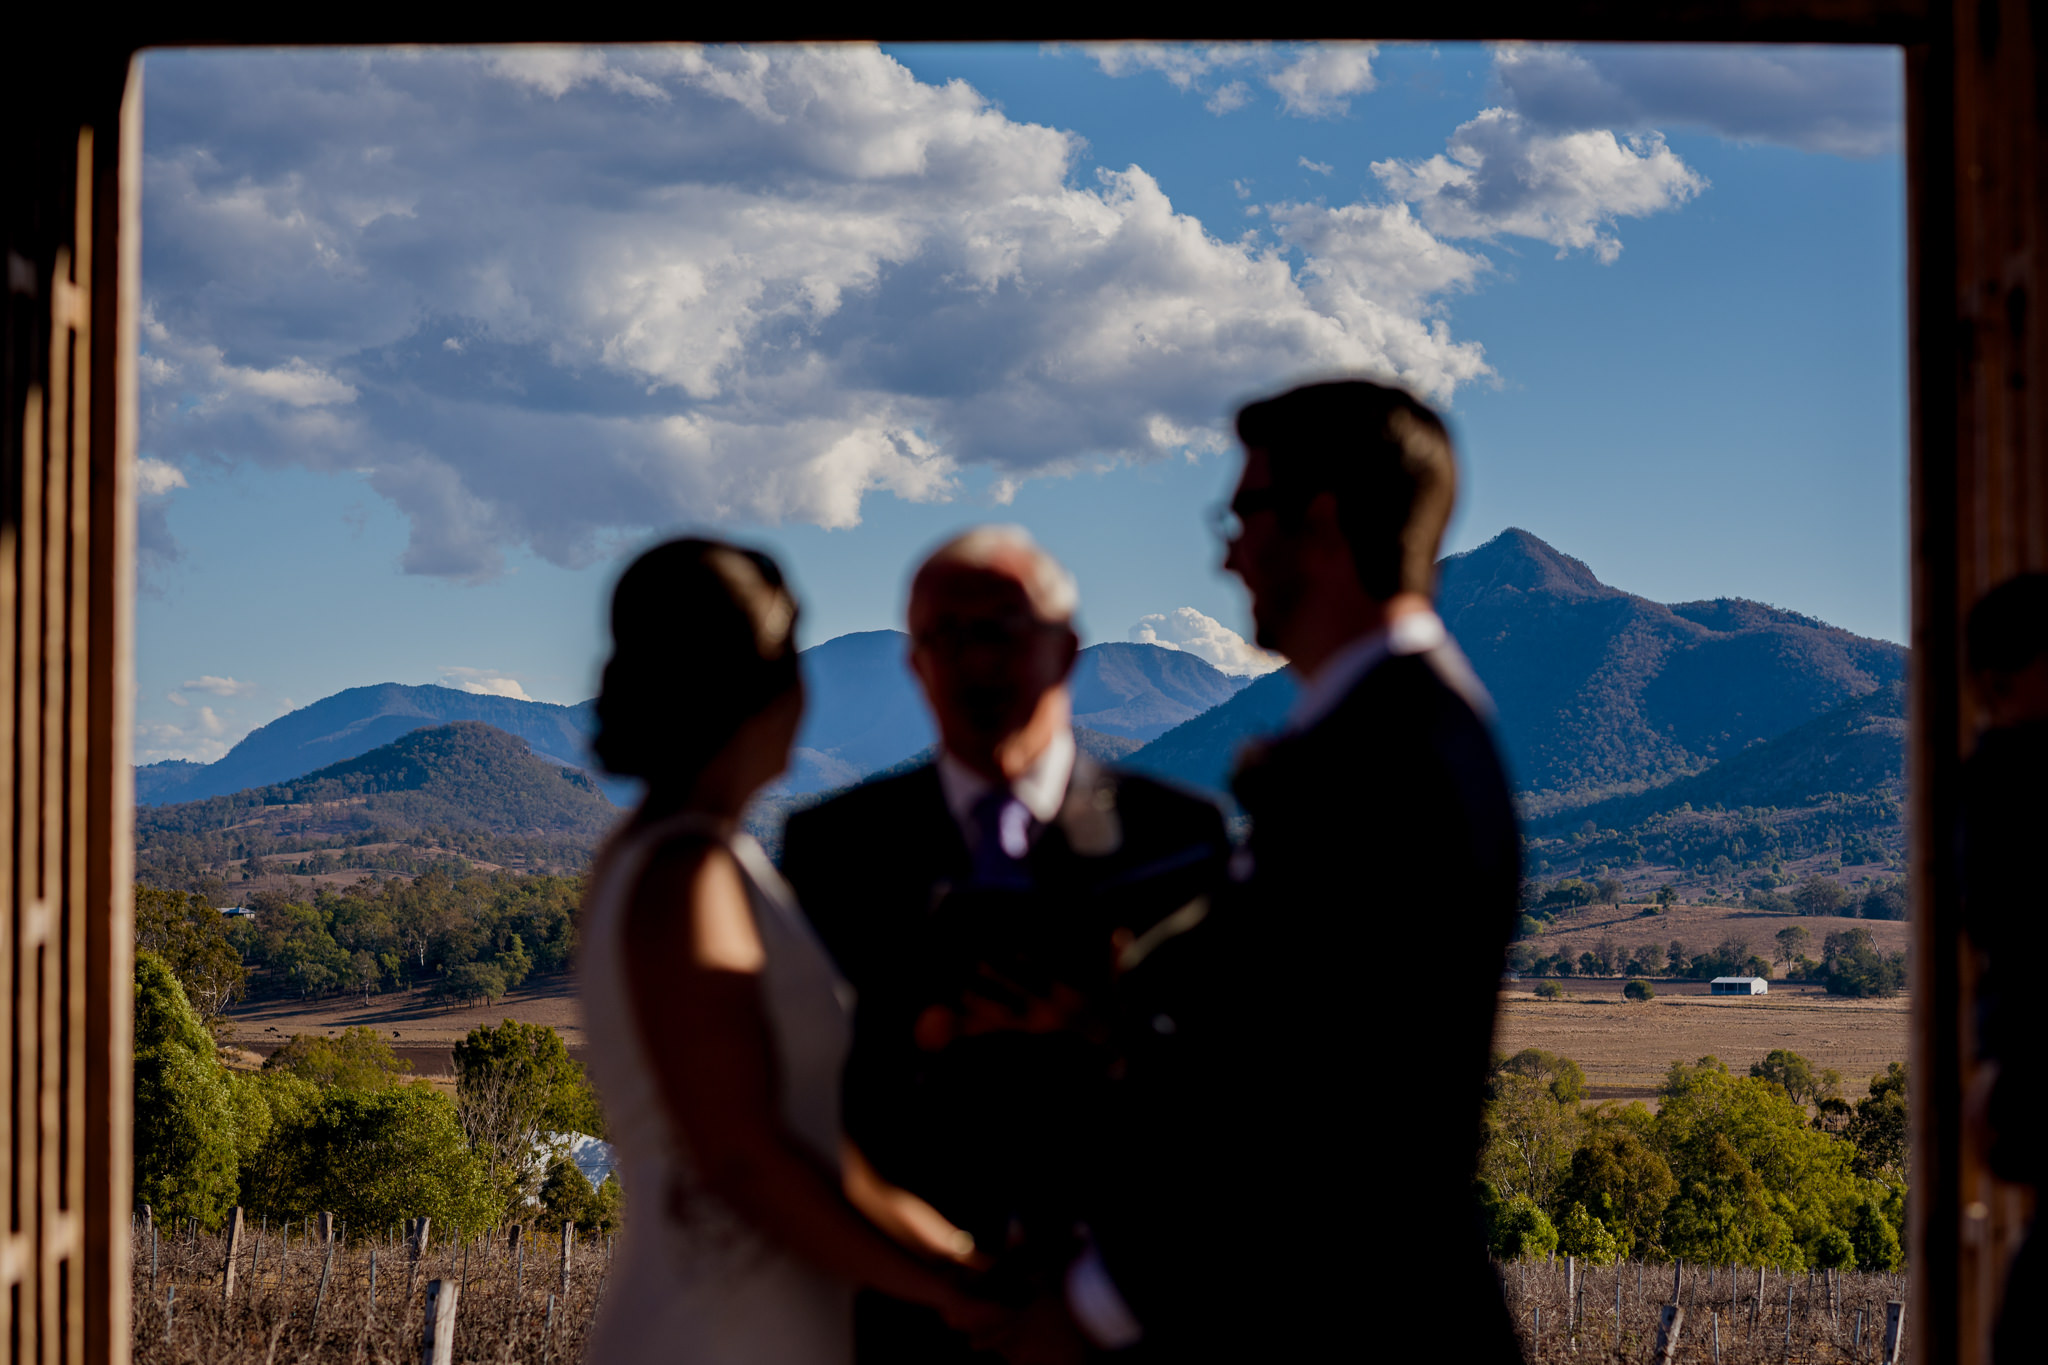 Landscape of mountain regions with blurred bride and groom in foreground